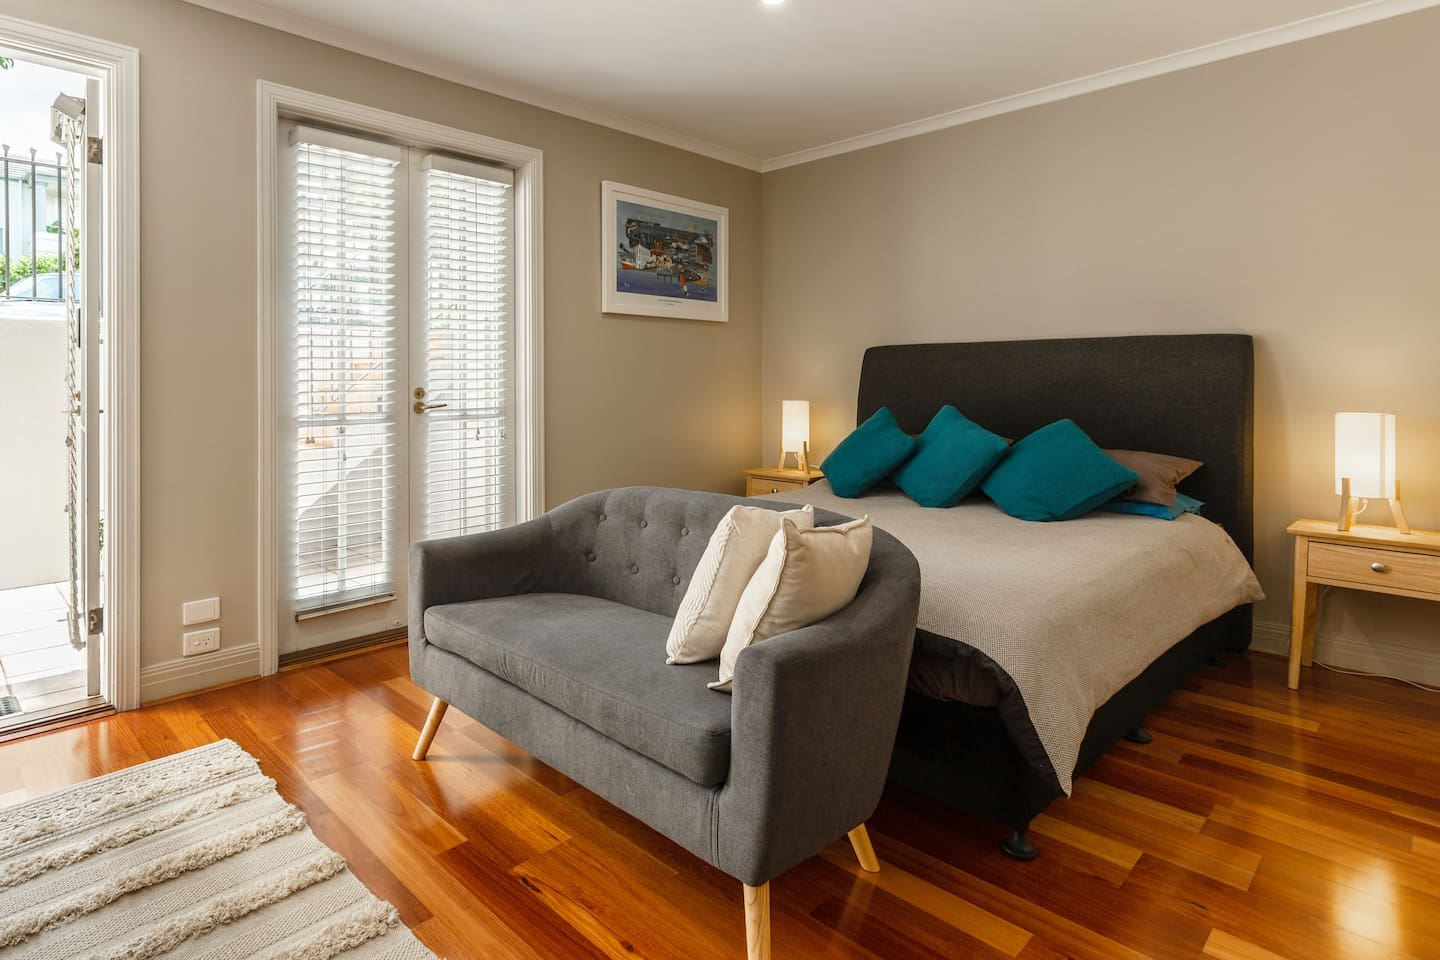 Enjoy relaxing in an air-conditioned, fully equipped apartment